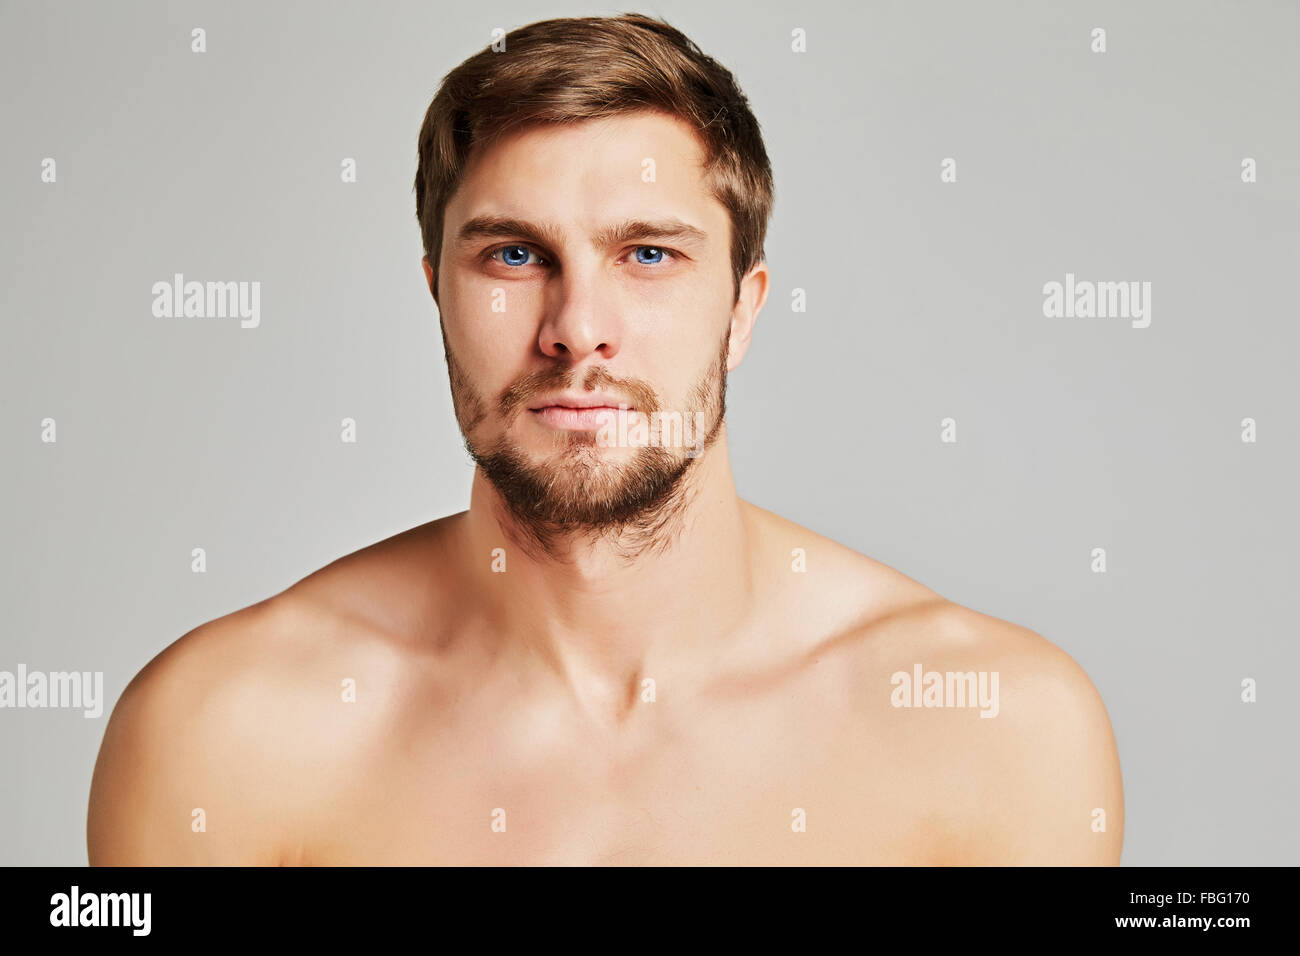 Portrait of a serious young man with bare shoulders on a gray background, powerful swimmers shoulders, beard, charismatic, - Stock Image